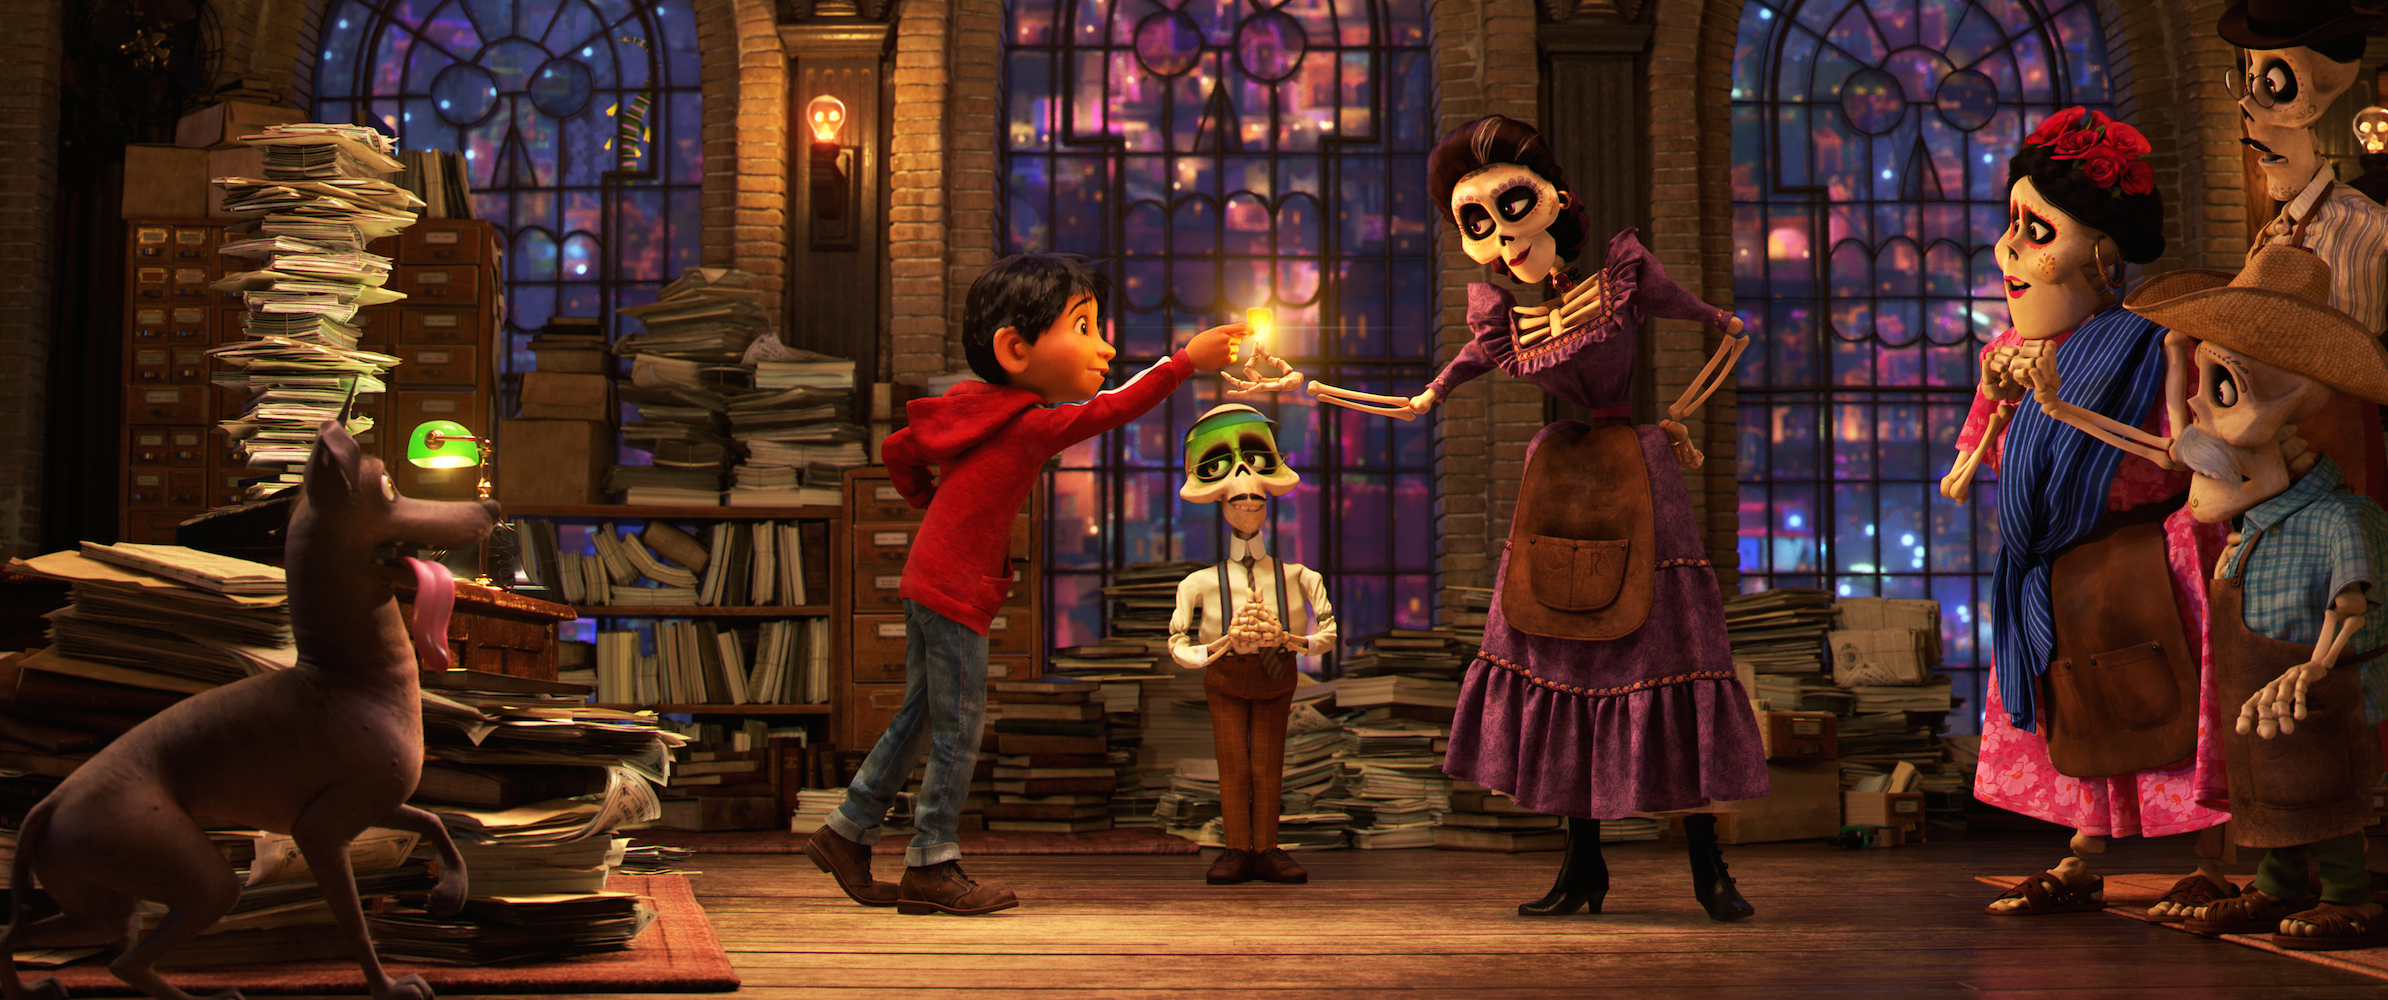 A Peruvian Father and Son Dubbed 'Coco' Into Quechua So Andean Kids Can Enjoy the Film